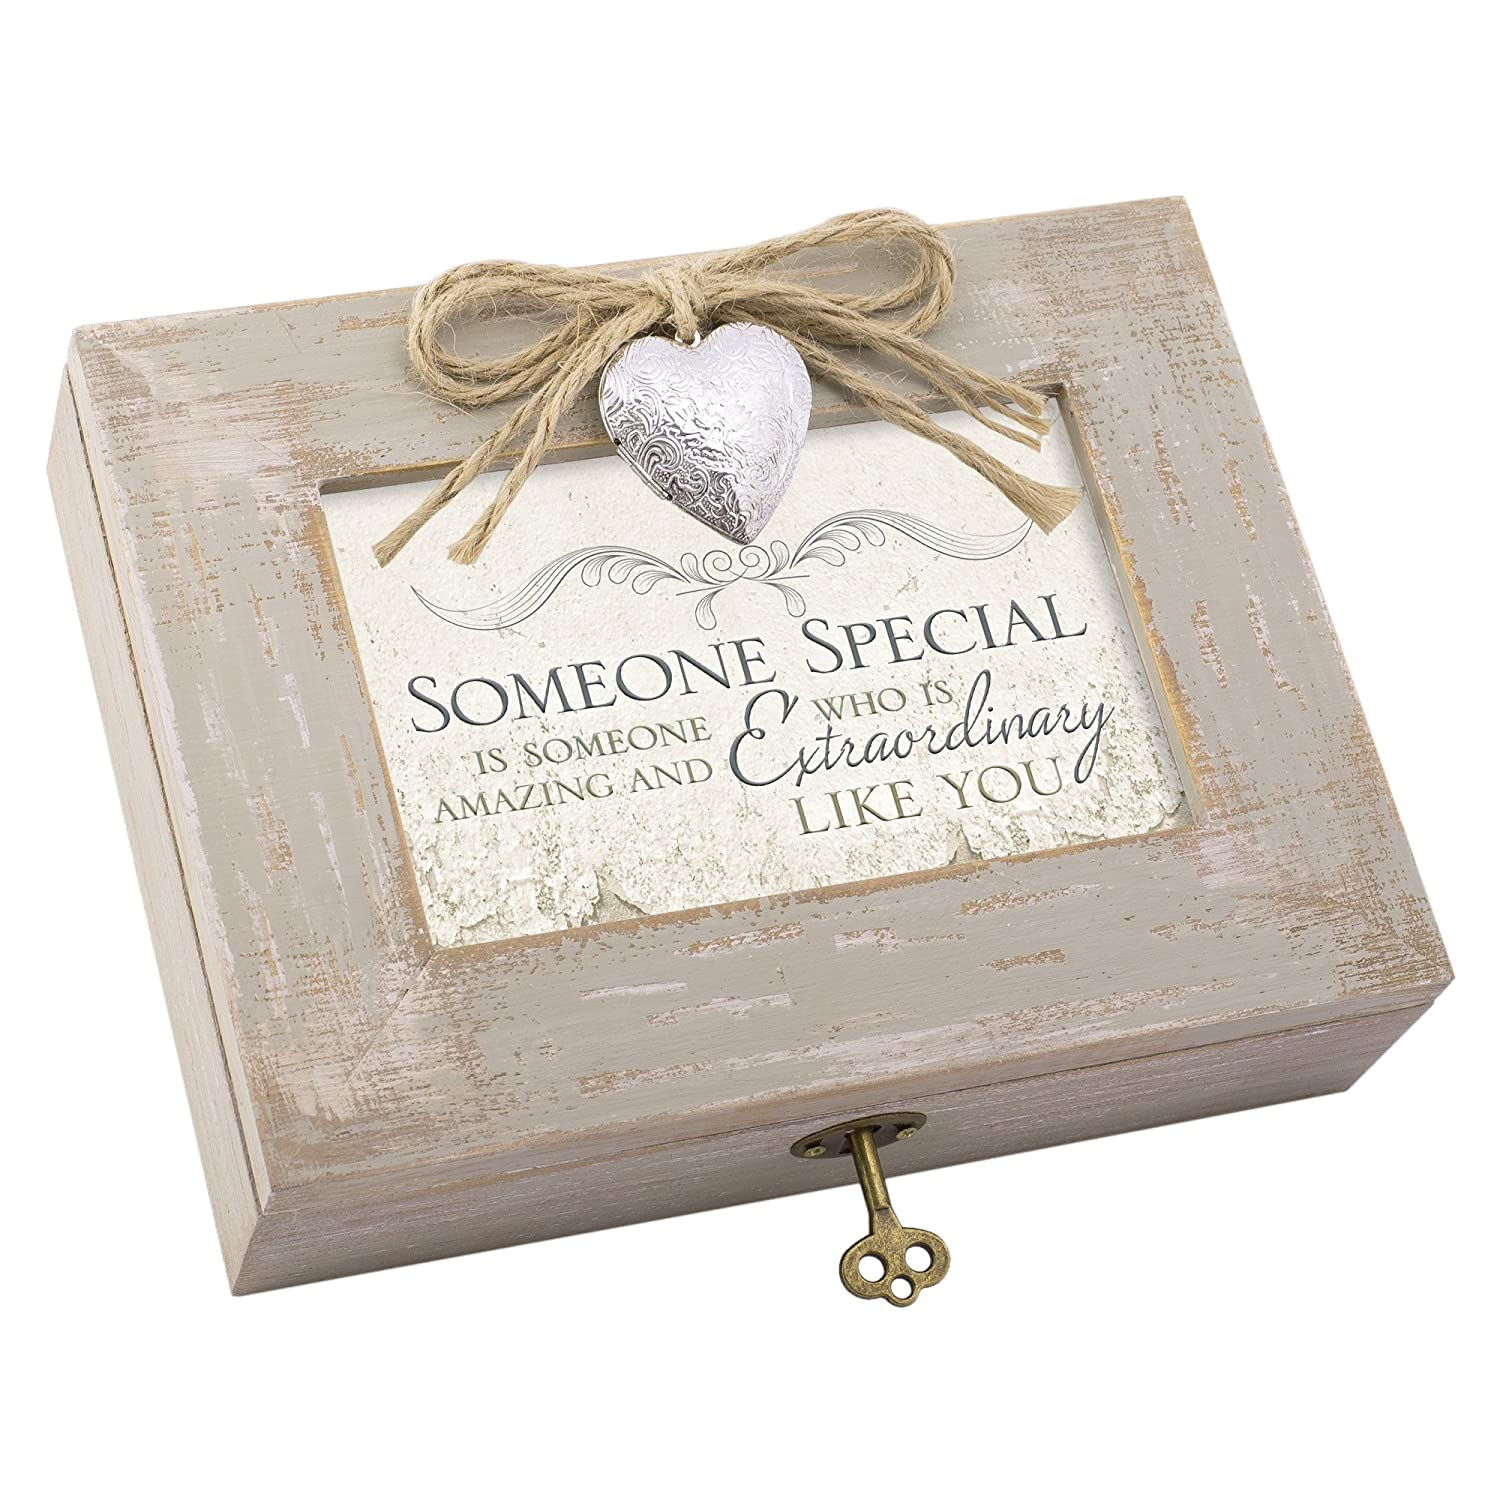 Someone Special Amazing Like You Distressed Wood Locket Jewelry Music Box Plays Tune Wonderful World Cottage Garden L21N